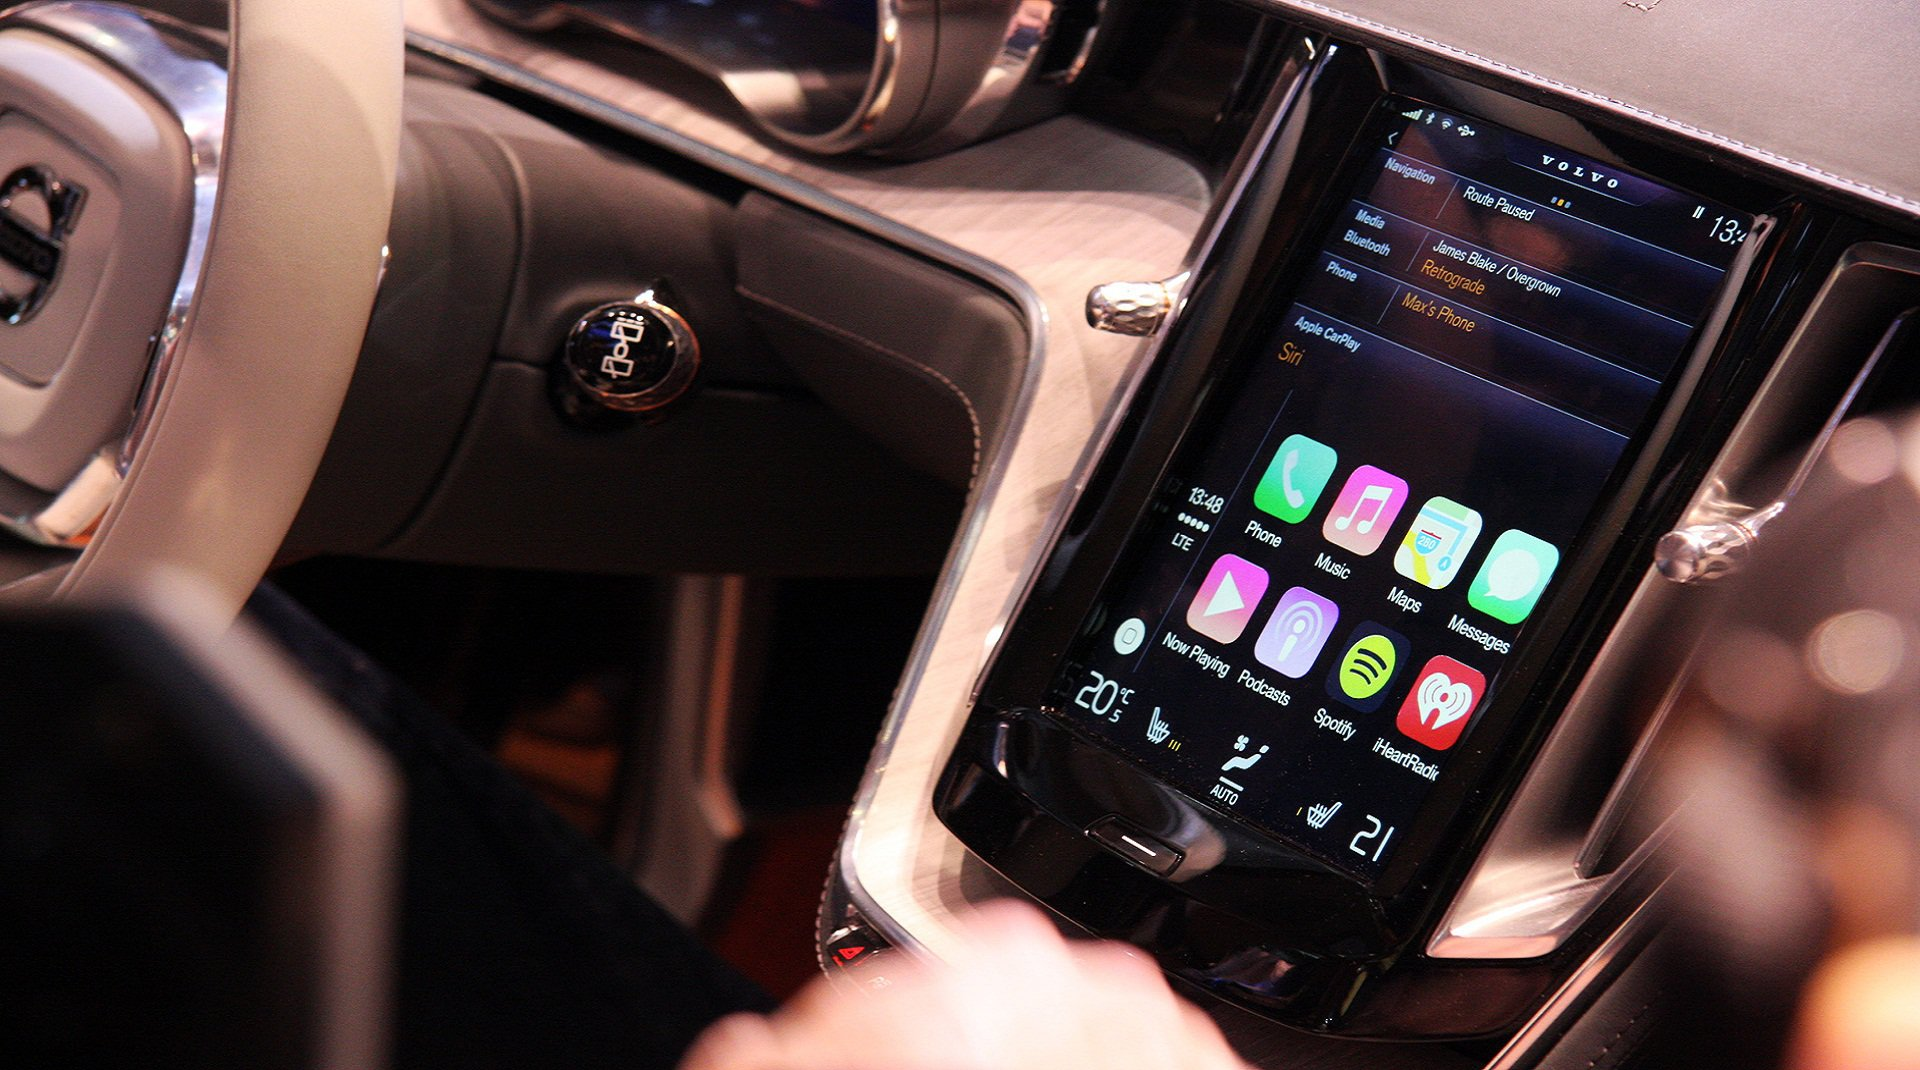 ������ ������������, ��� �������� ������� CarPlay �� Apple � Ferrari FF ����